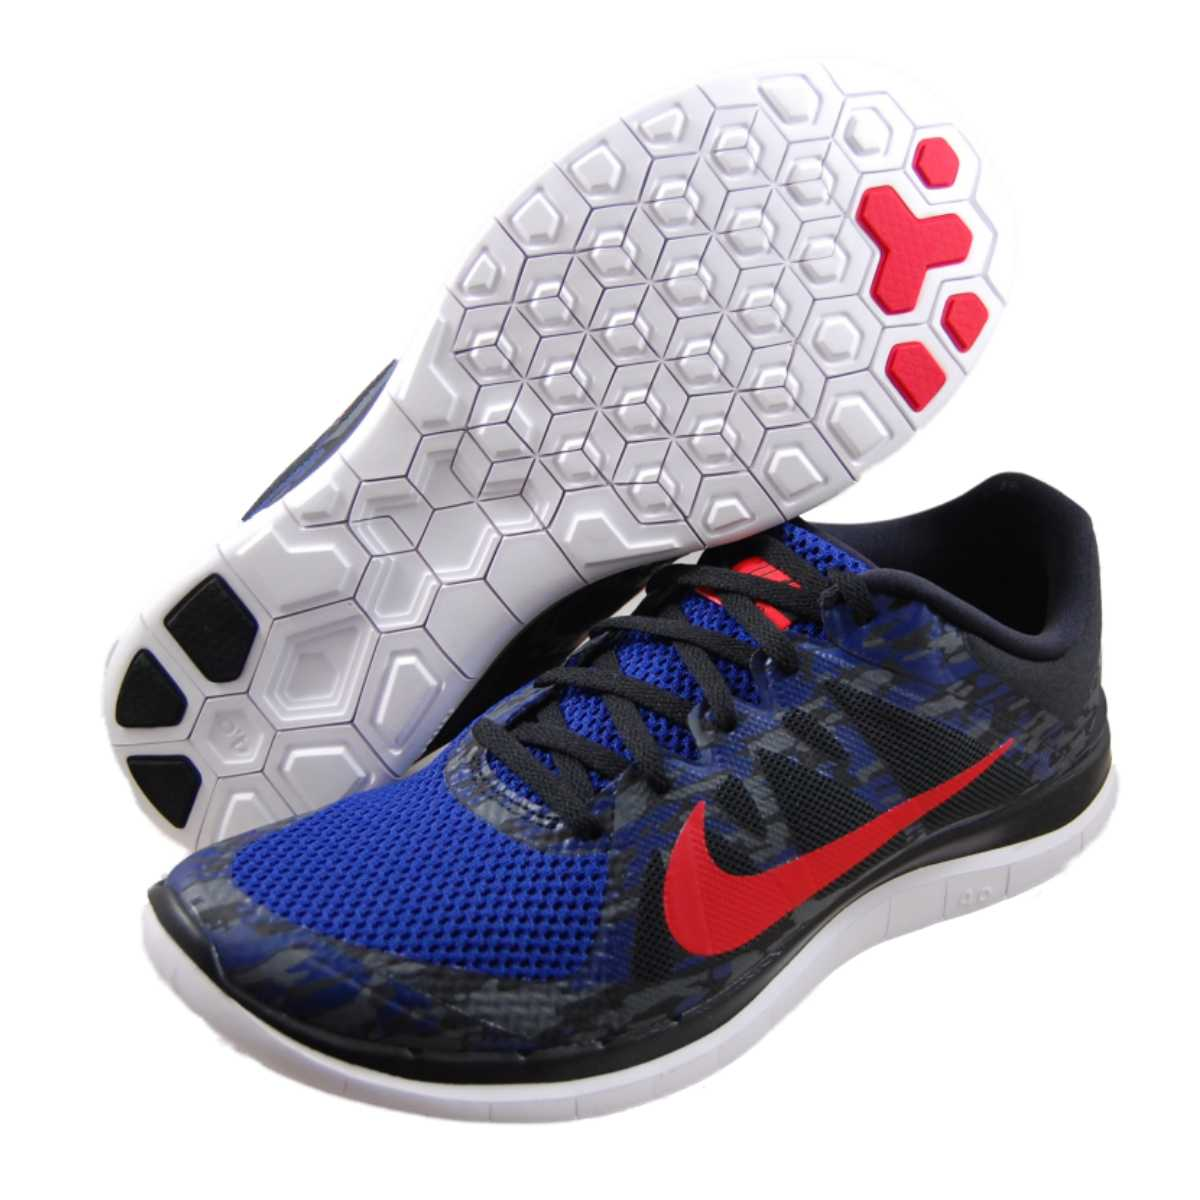 6d6d3693c7bce nike metcon 3 dsx flyknit fastest running shoes. Kraft greeted fans